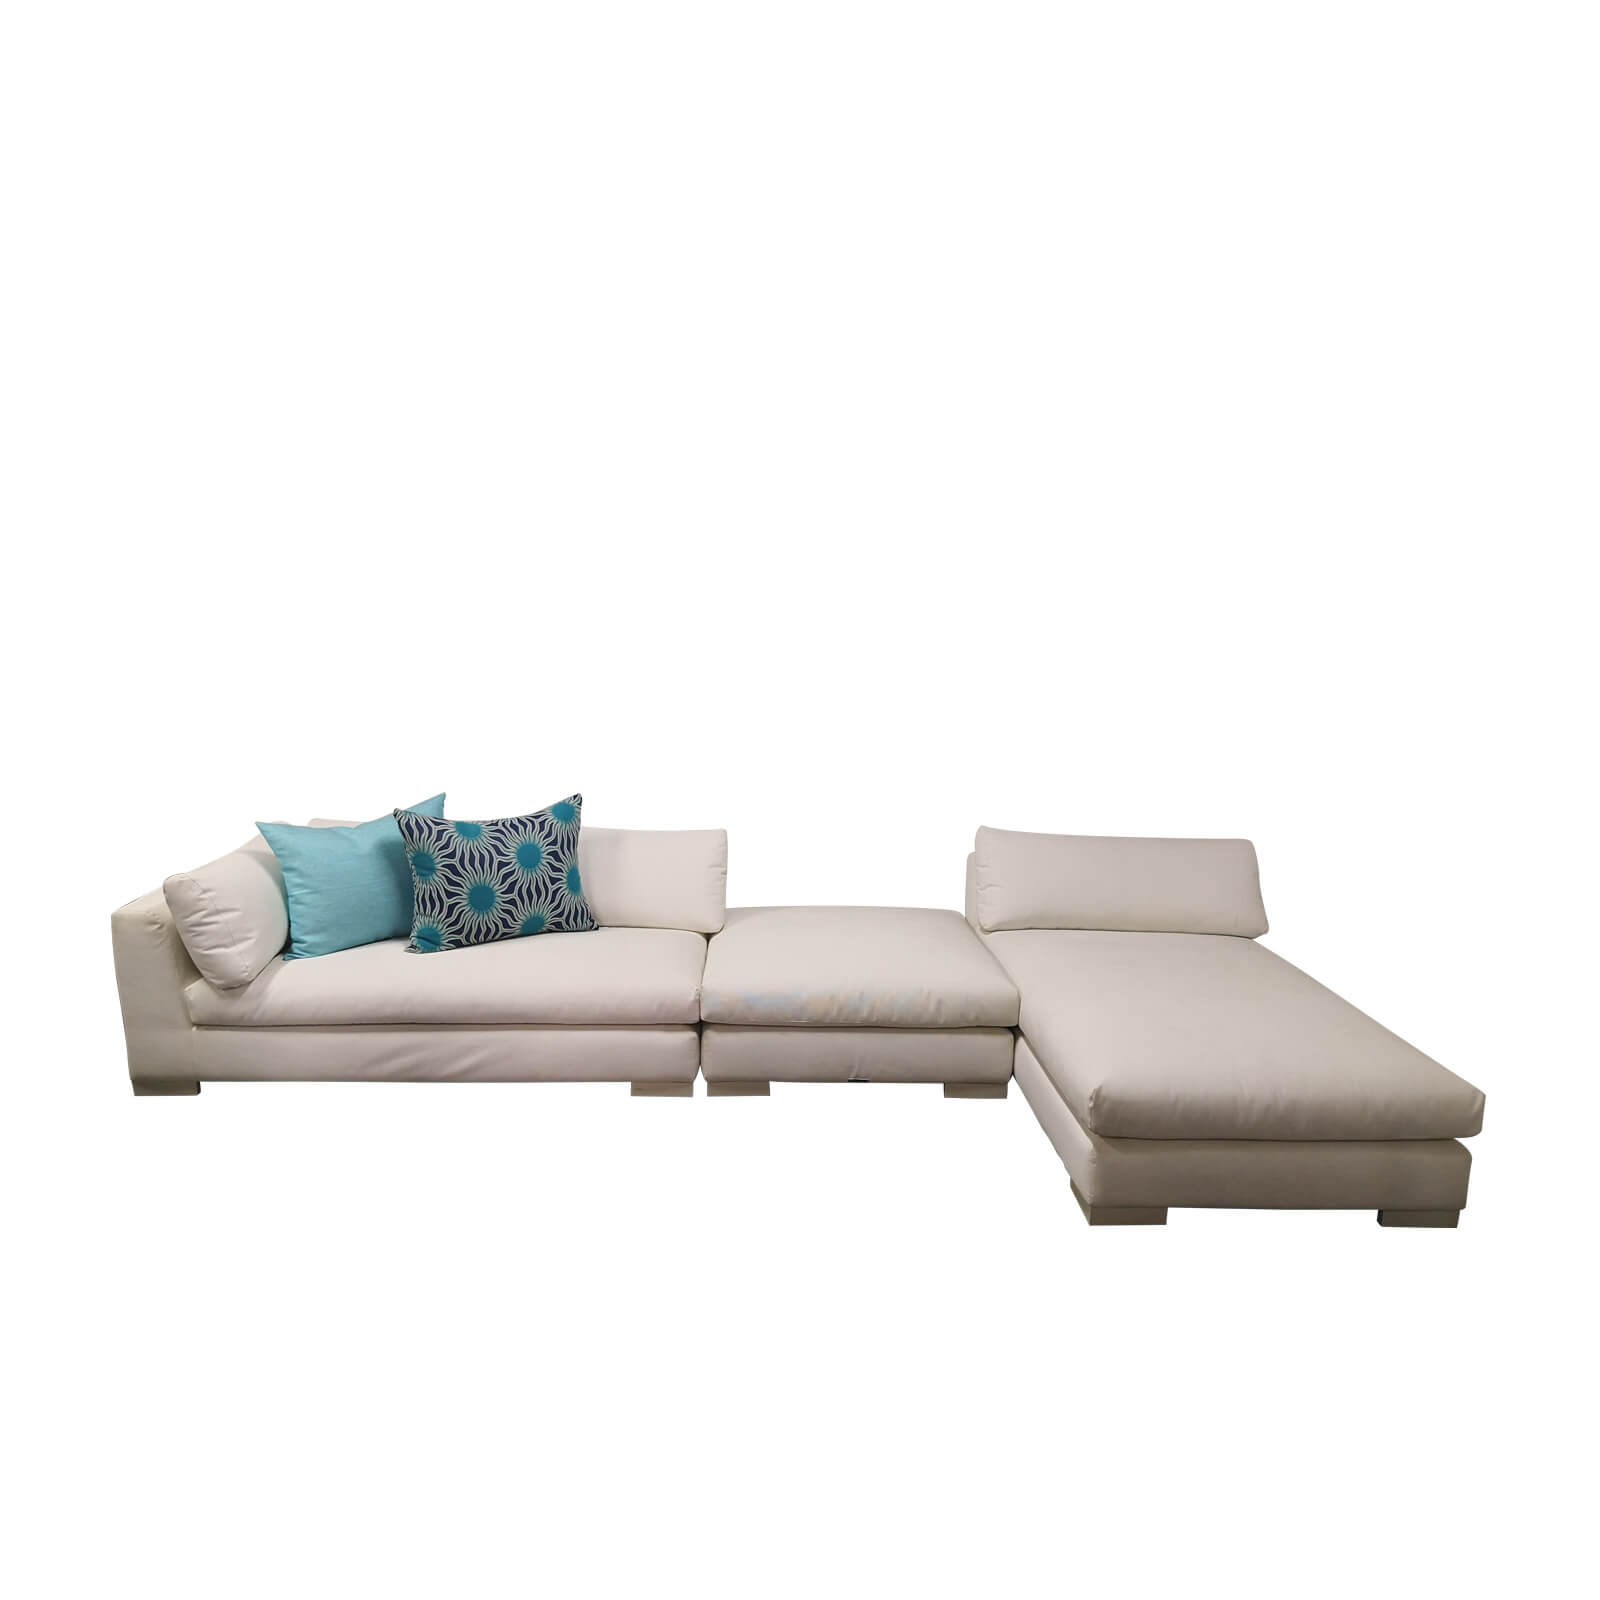 Two Design Lovers Outdoor furniture Osier Belle Leisuretex white sofa set with ottoman